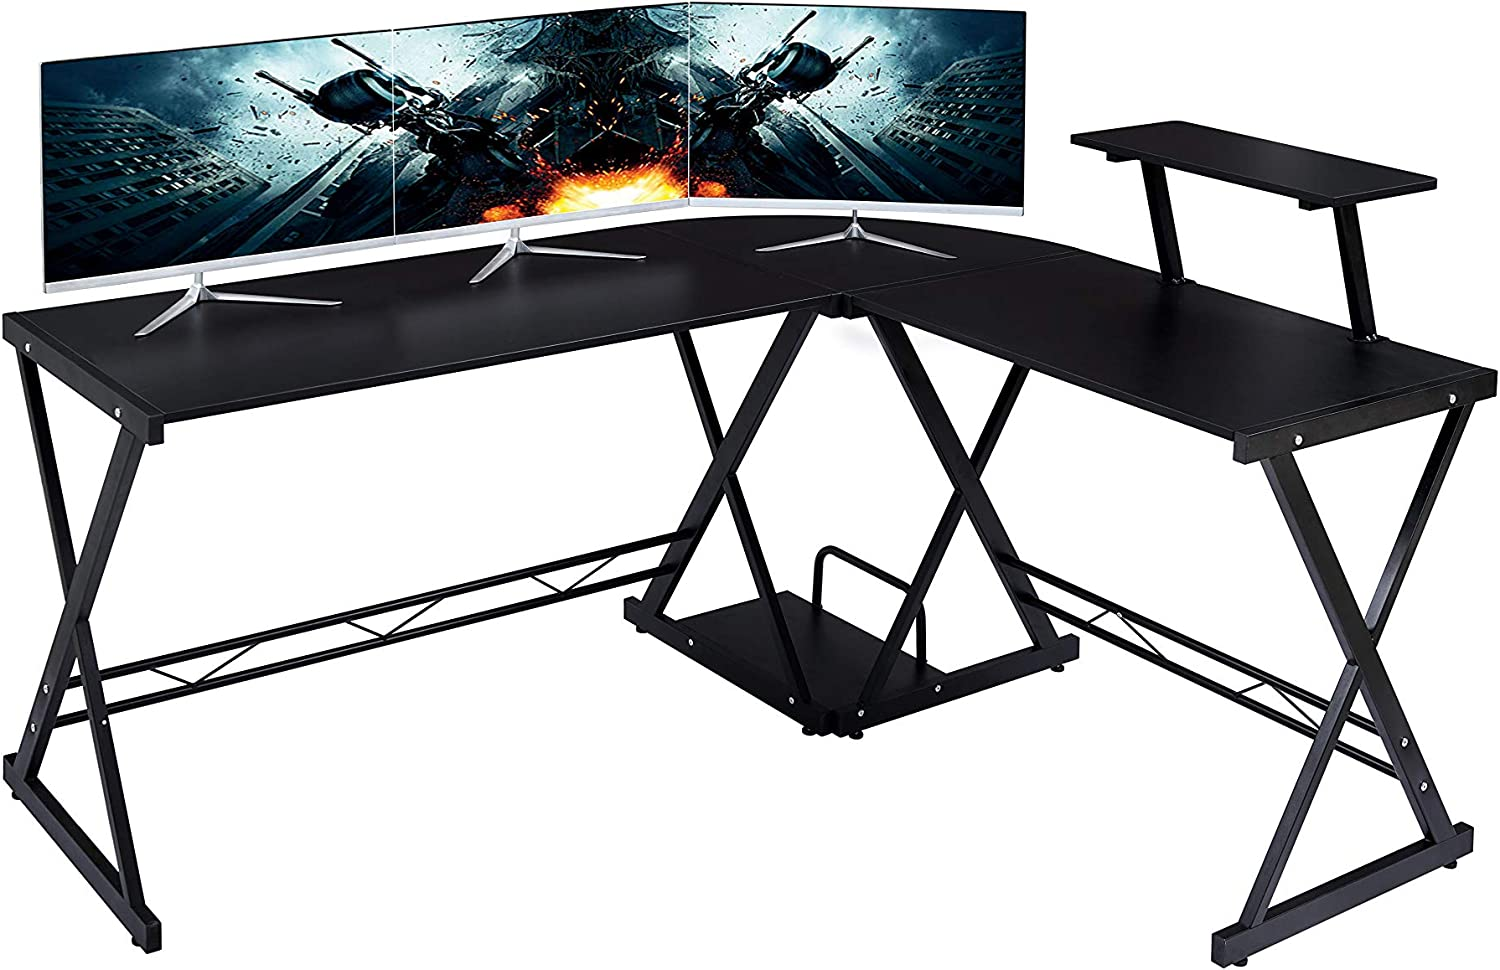 "GreenForest L Shaped Desk Large Size with Moveable Shelf, 64""x50"" Studio Table Home Office Computer Corner Desk for Working Studying Gaming PC Workstation, Black"